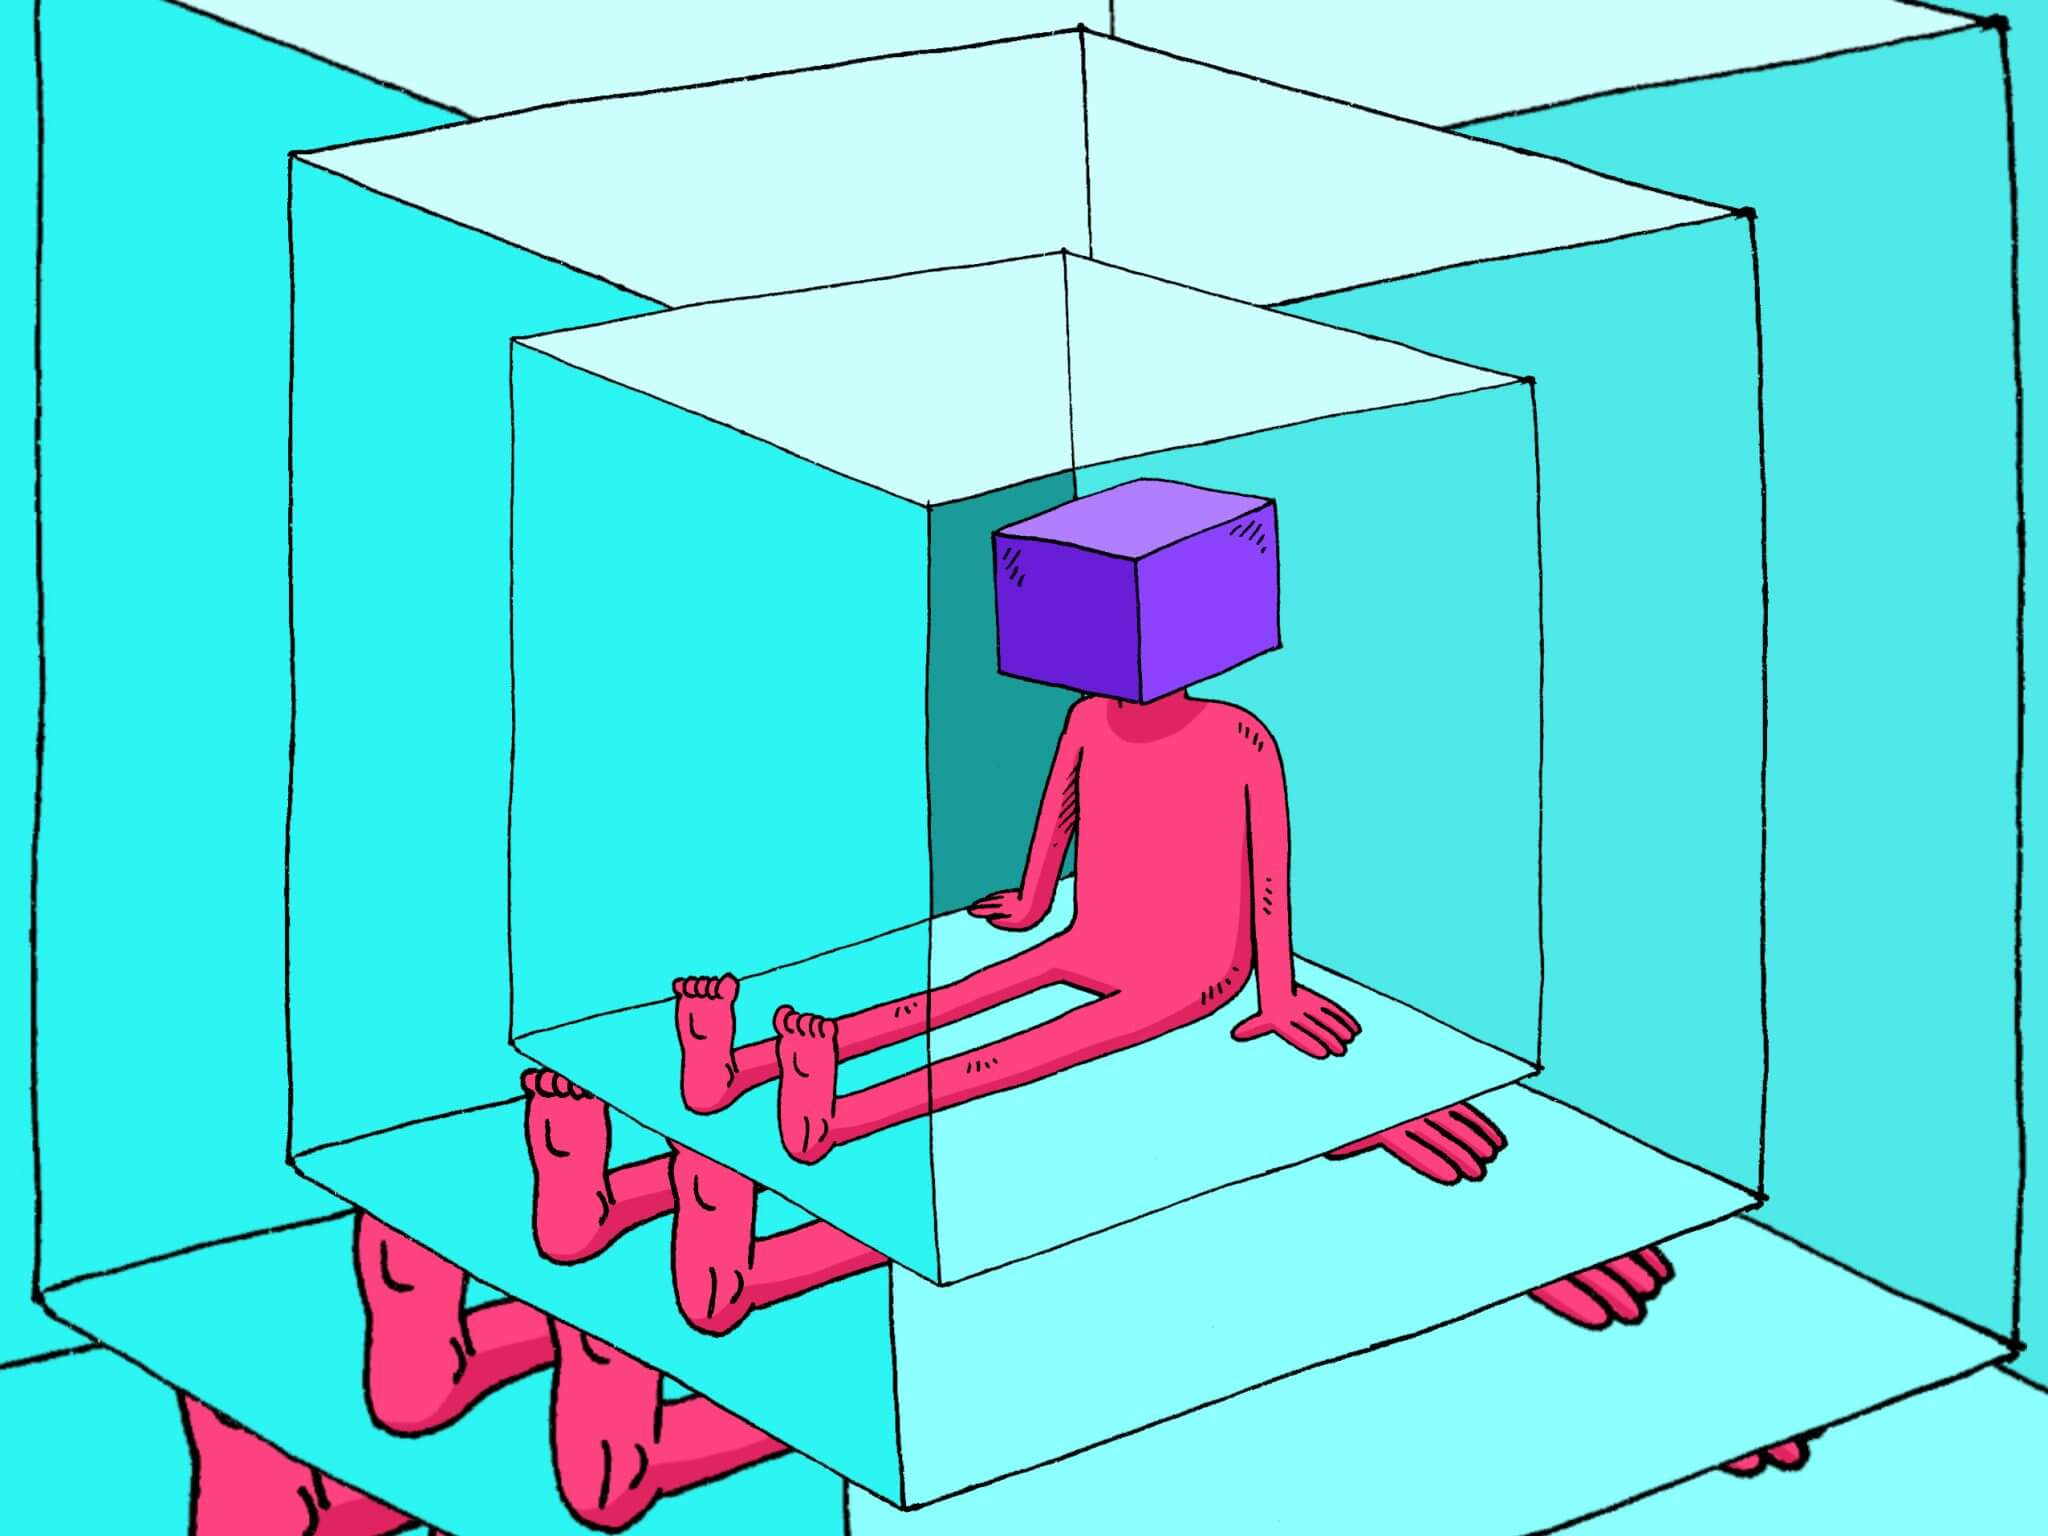 Illustration of man with square head trapped in square box